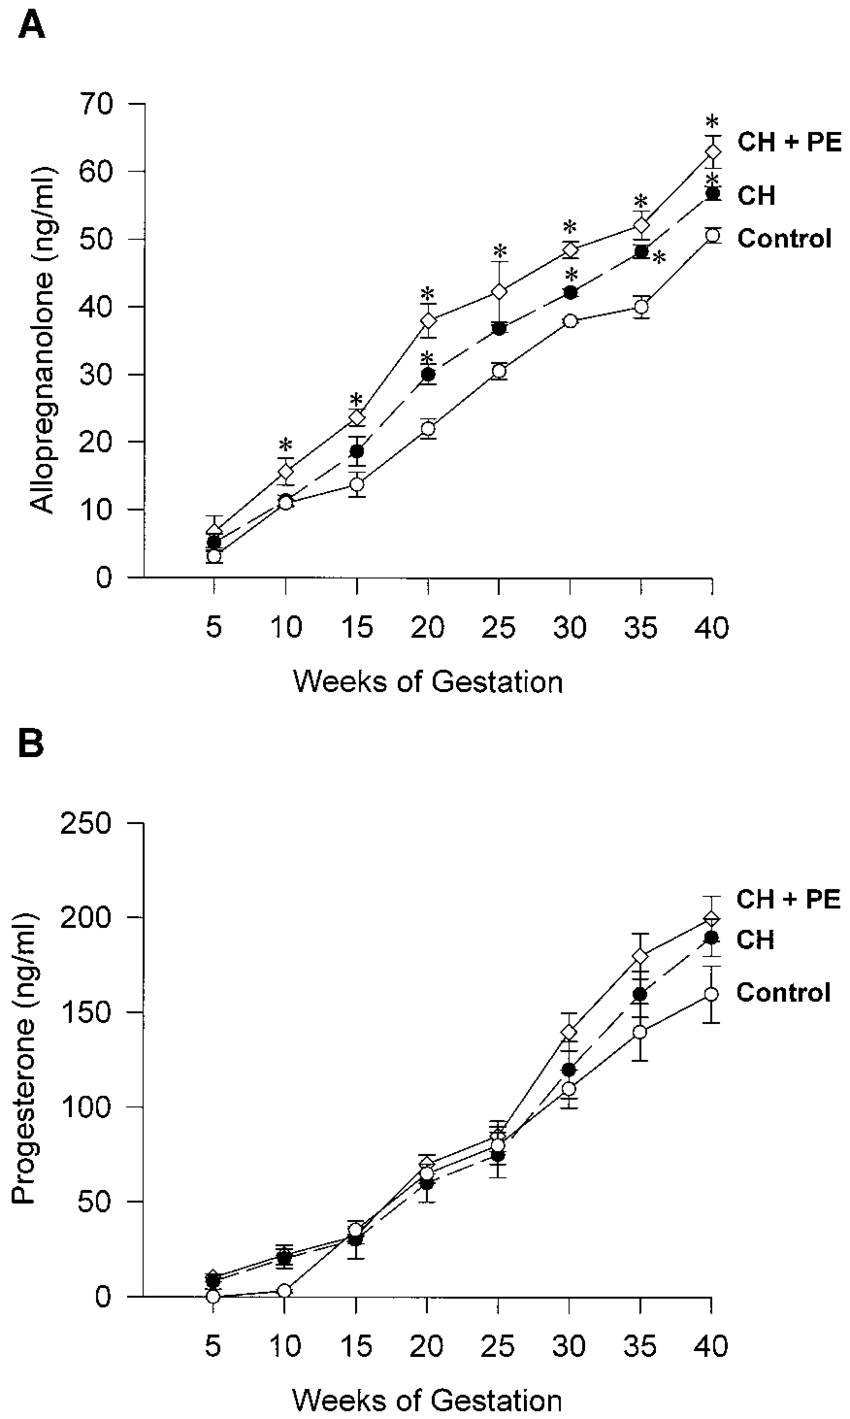 medium resolution of serum allopregnanolone a and progesterone b levels correlate with weeks of gestation